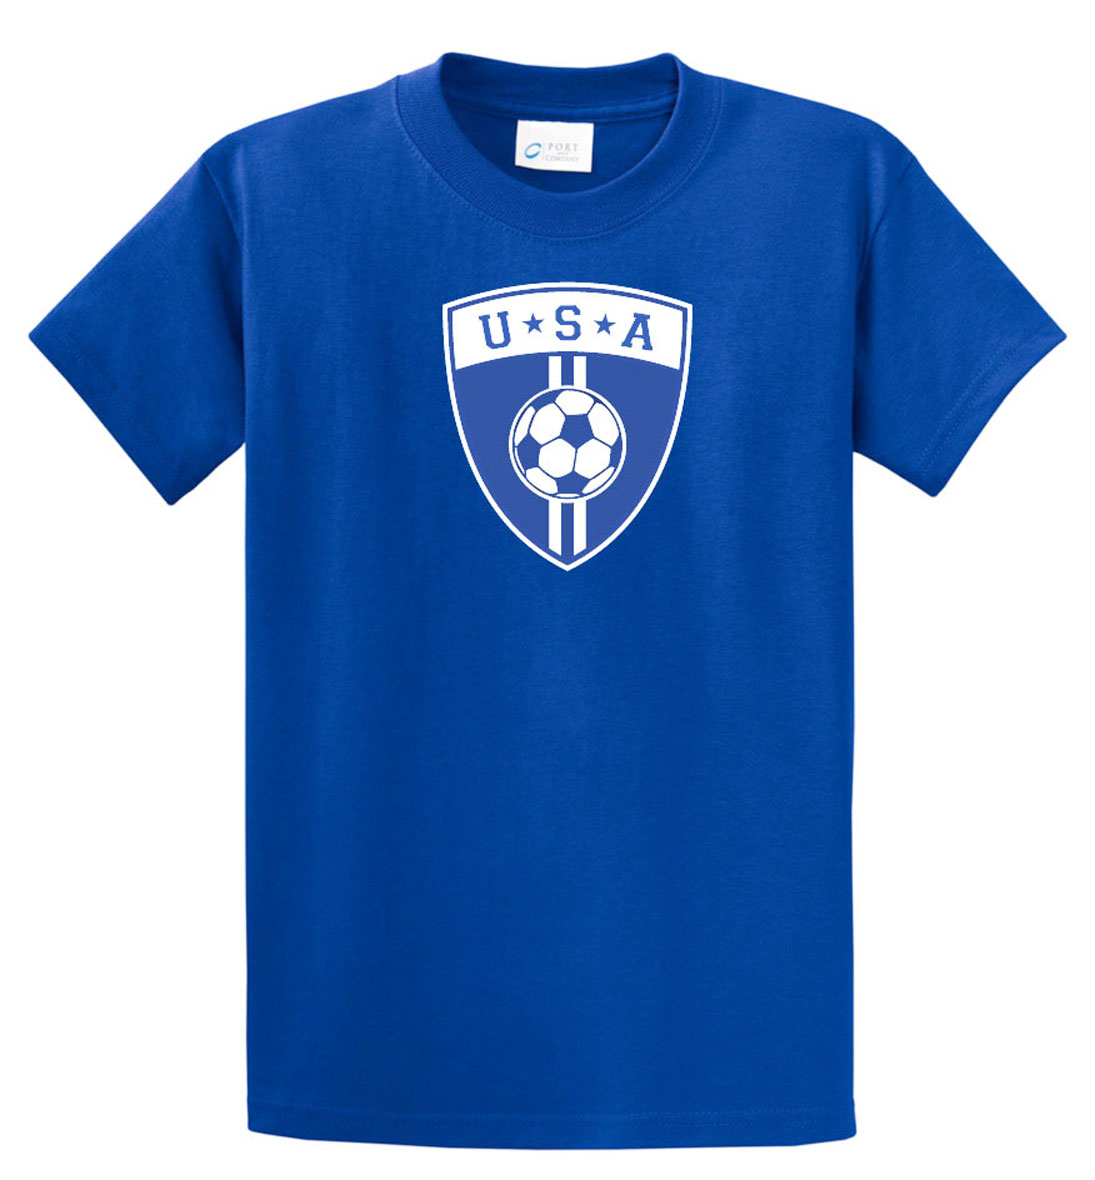 USA soccer T shirt in royal blue for youths and adults by Code Four Athletics